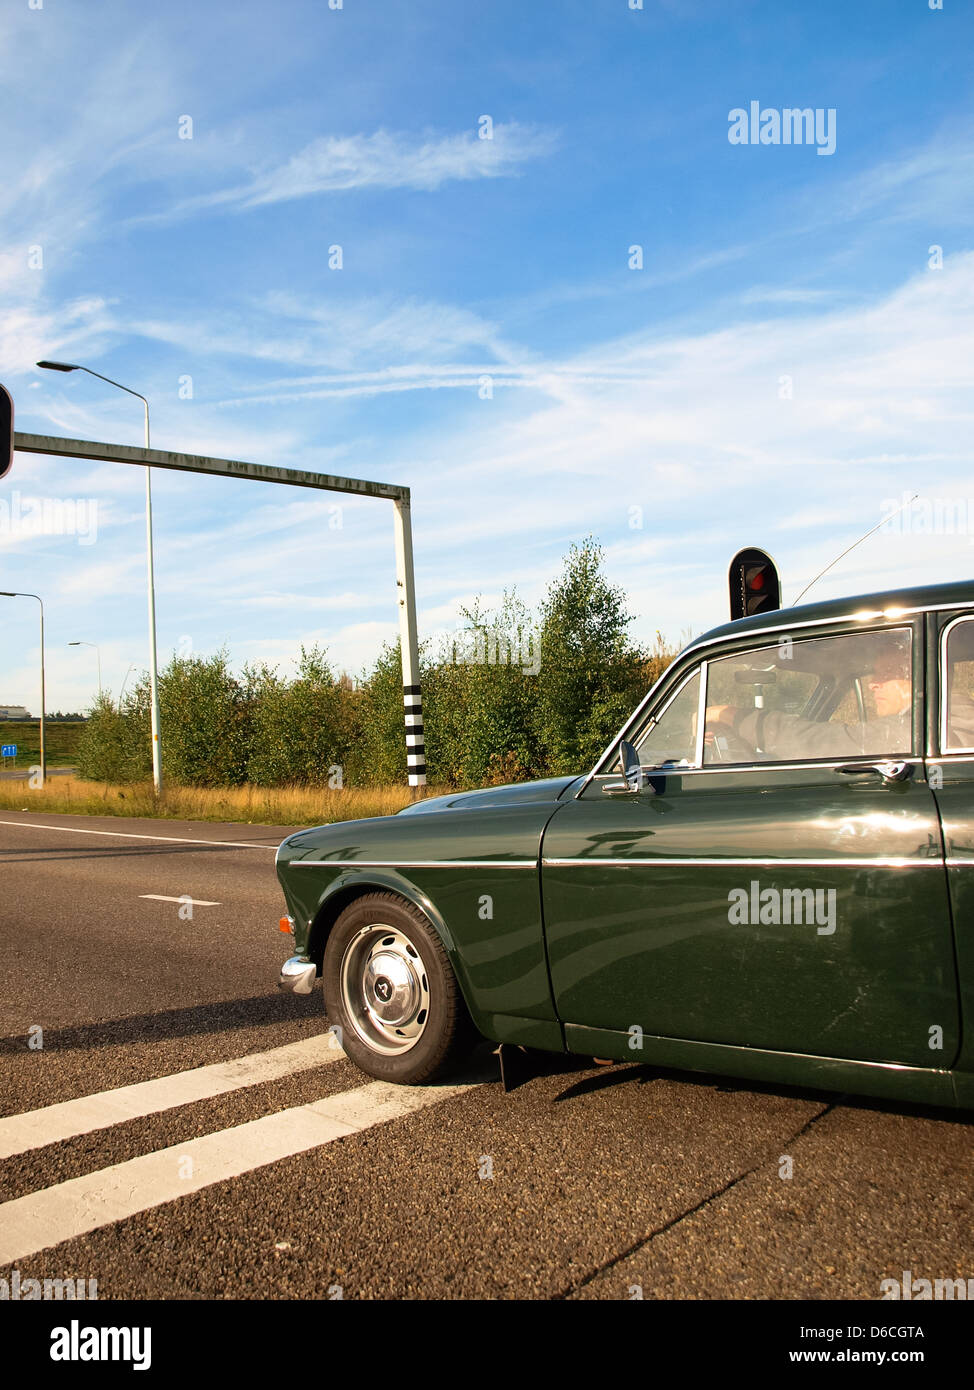 Old Volvo Car On A Highway Stop Stock Photo 55595690 Alamy